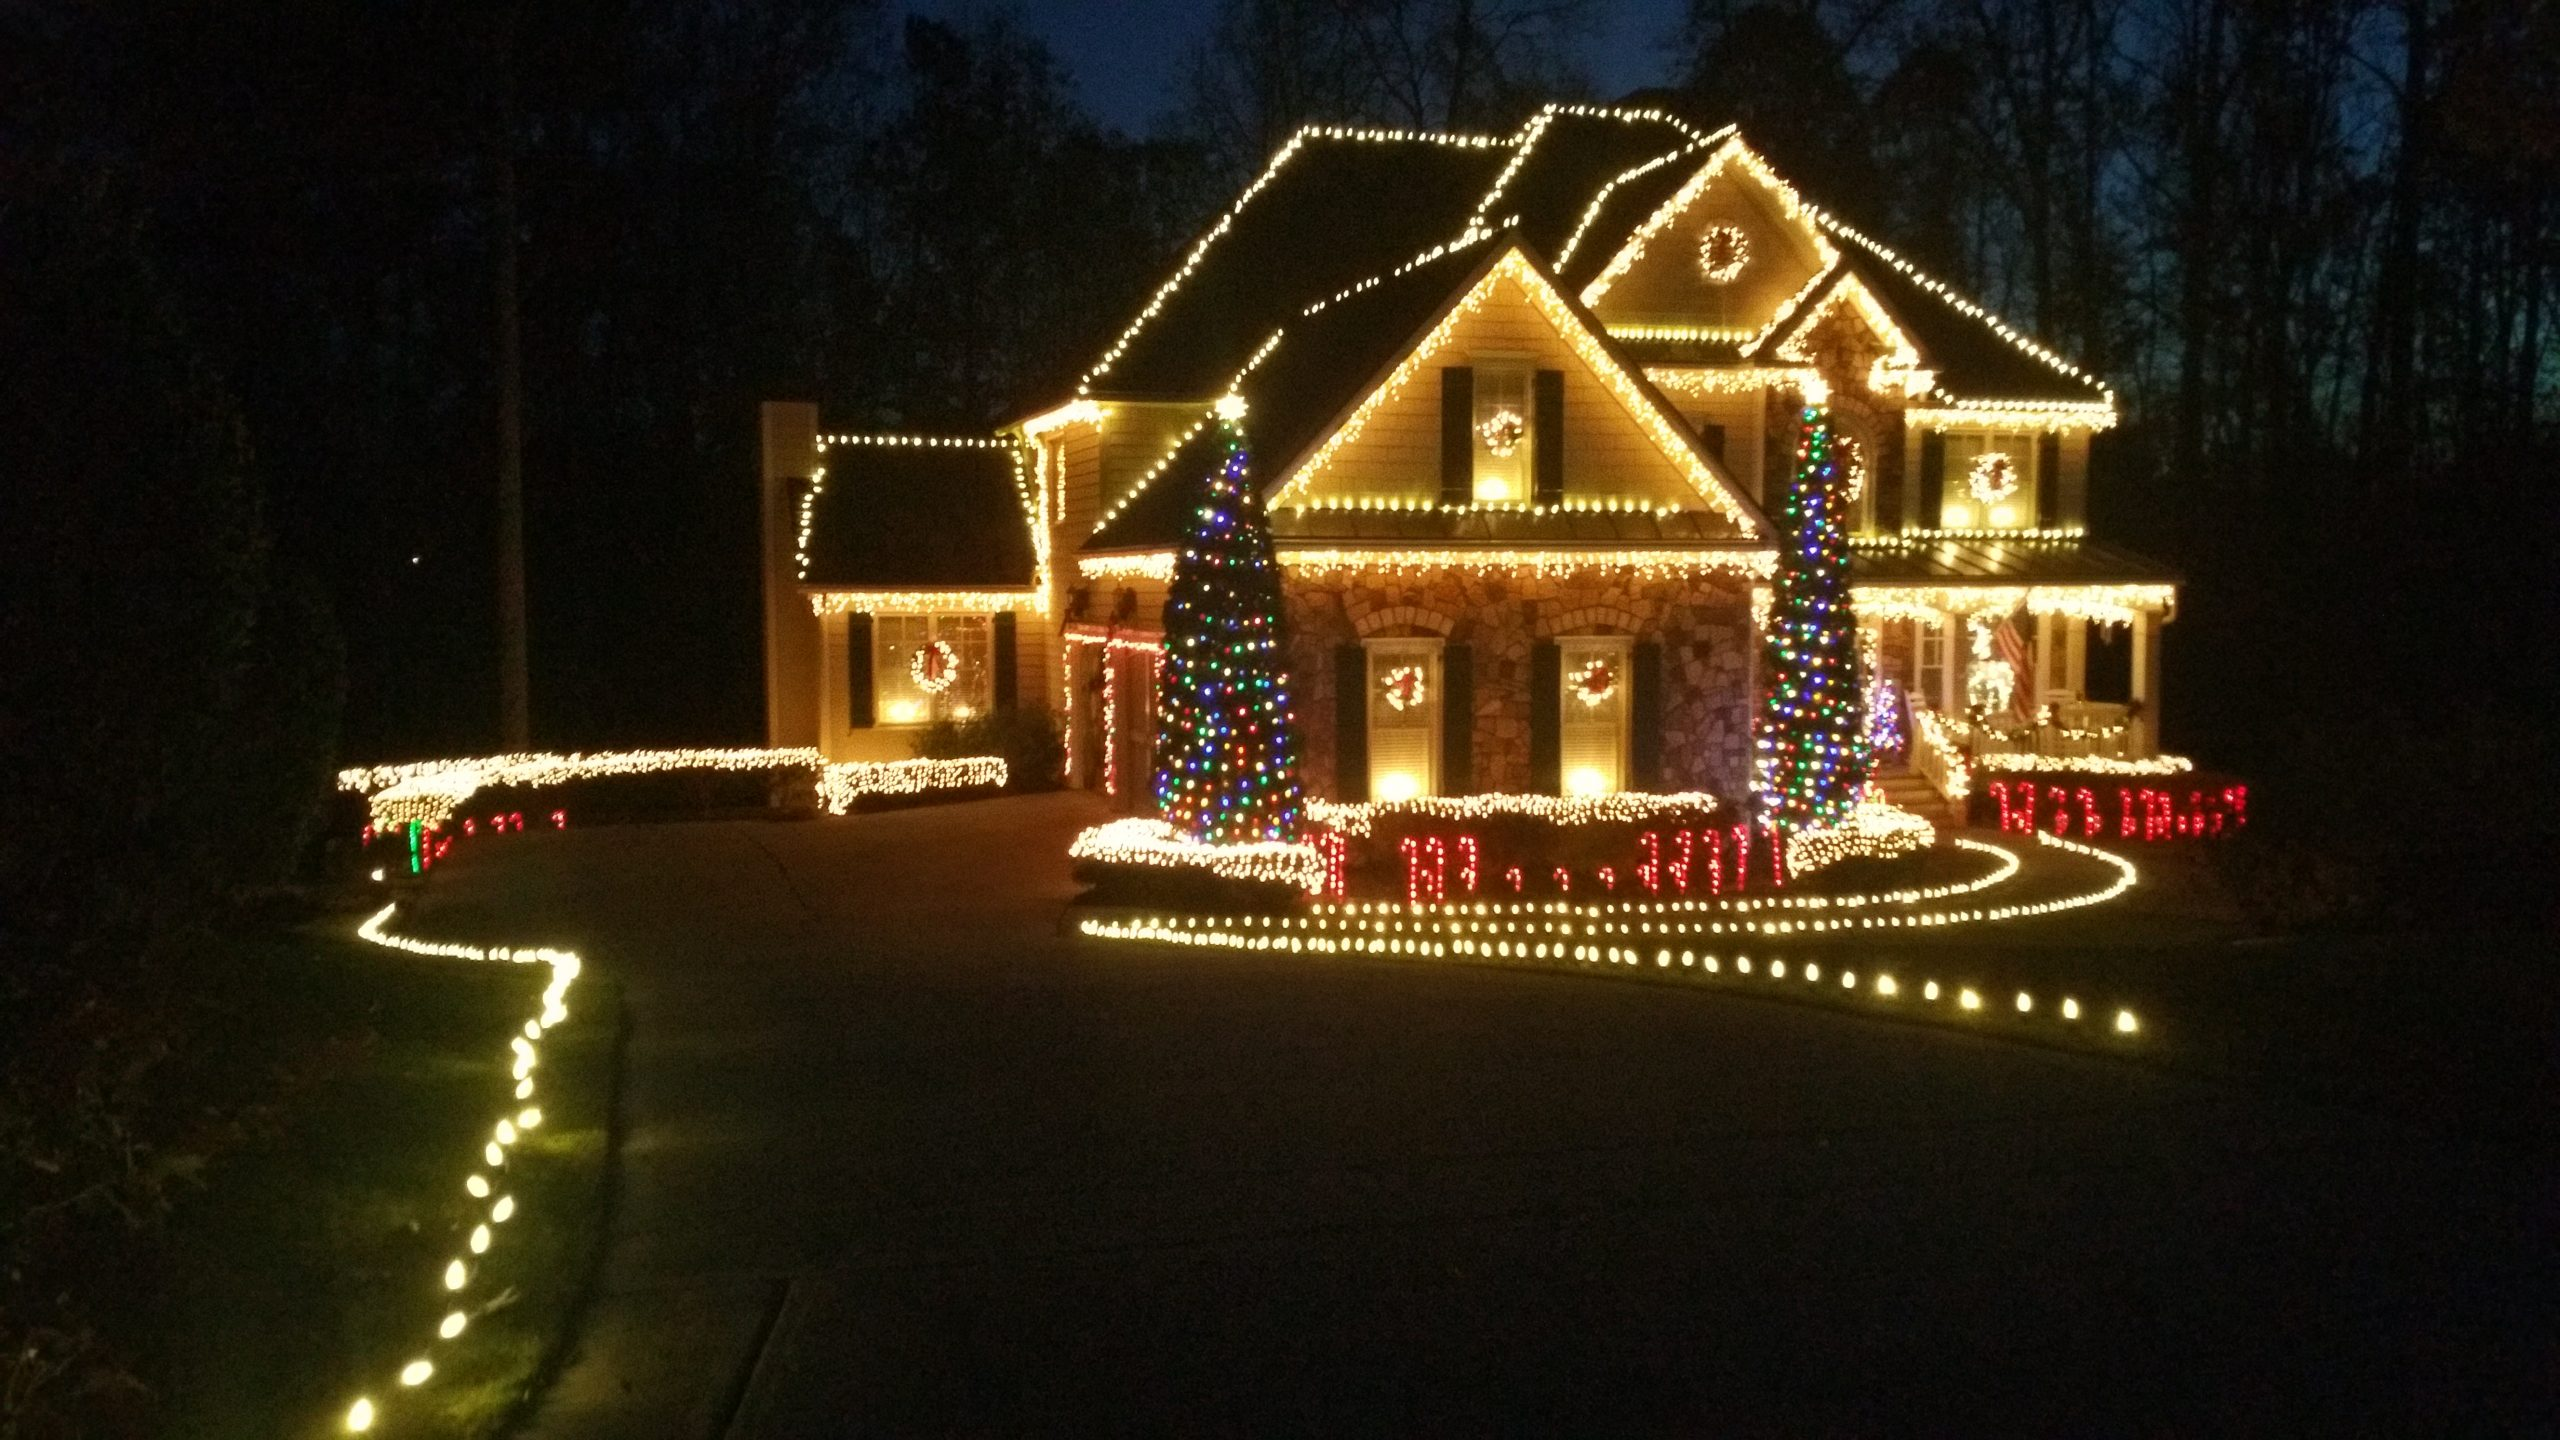 Christmas Vacation Forsyth County Ga 2020 2019 Operation Griswold 5.0 More Spectacular!